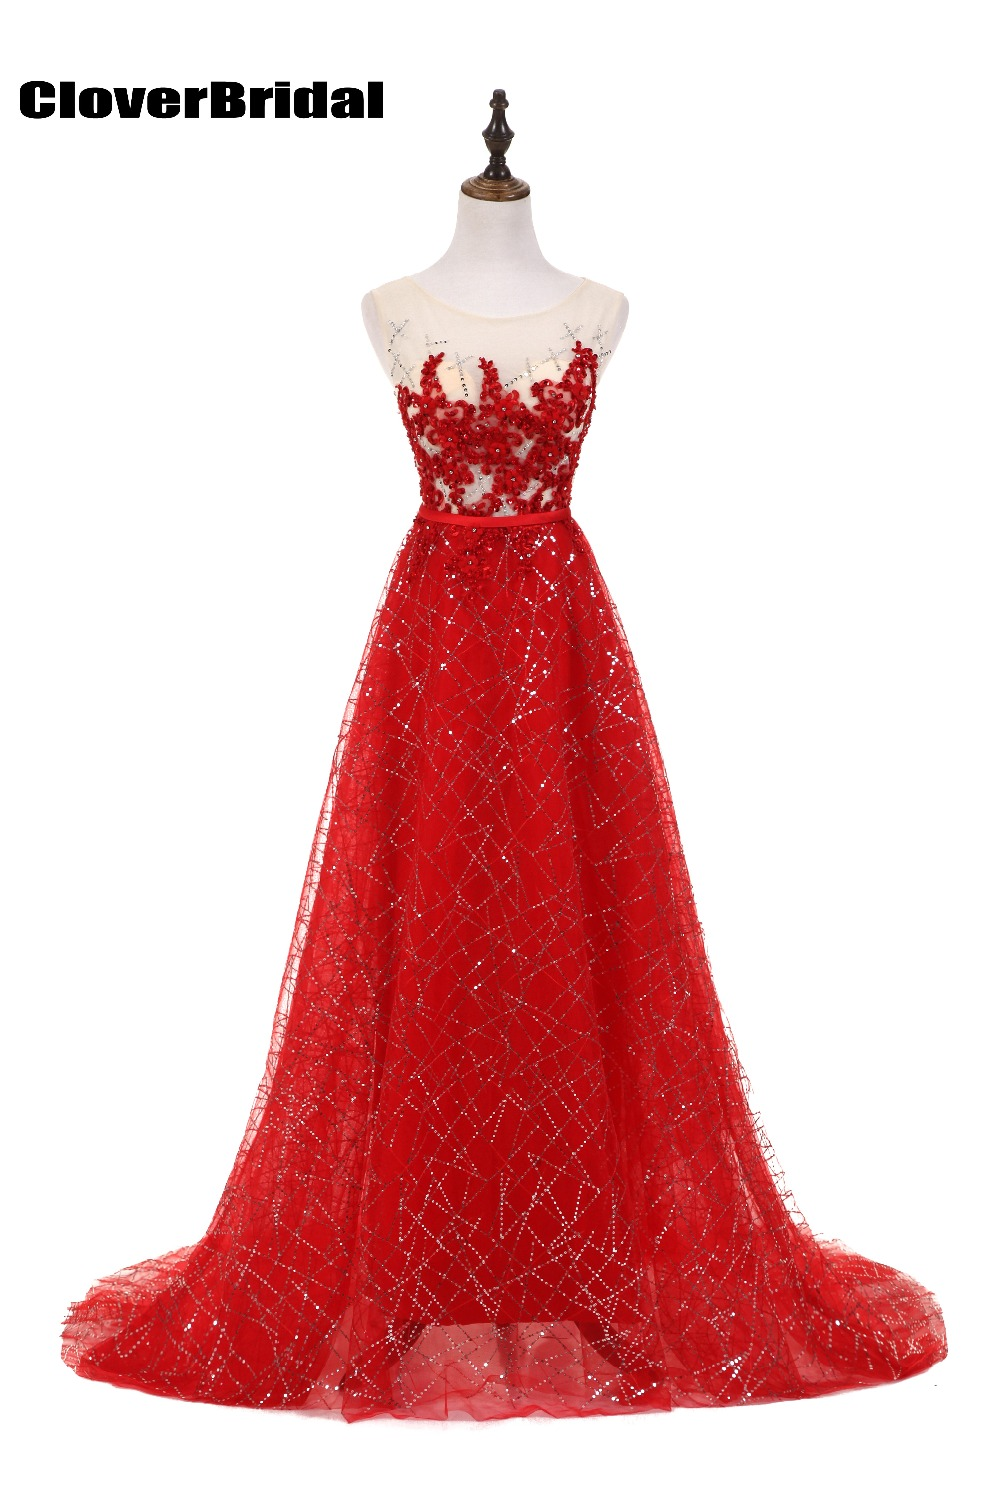 CloverBridal glitter luminous A-line sleeveless red junior   bridesmaid     dresses   long 2017 latest cheap nice illusion gown